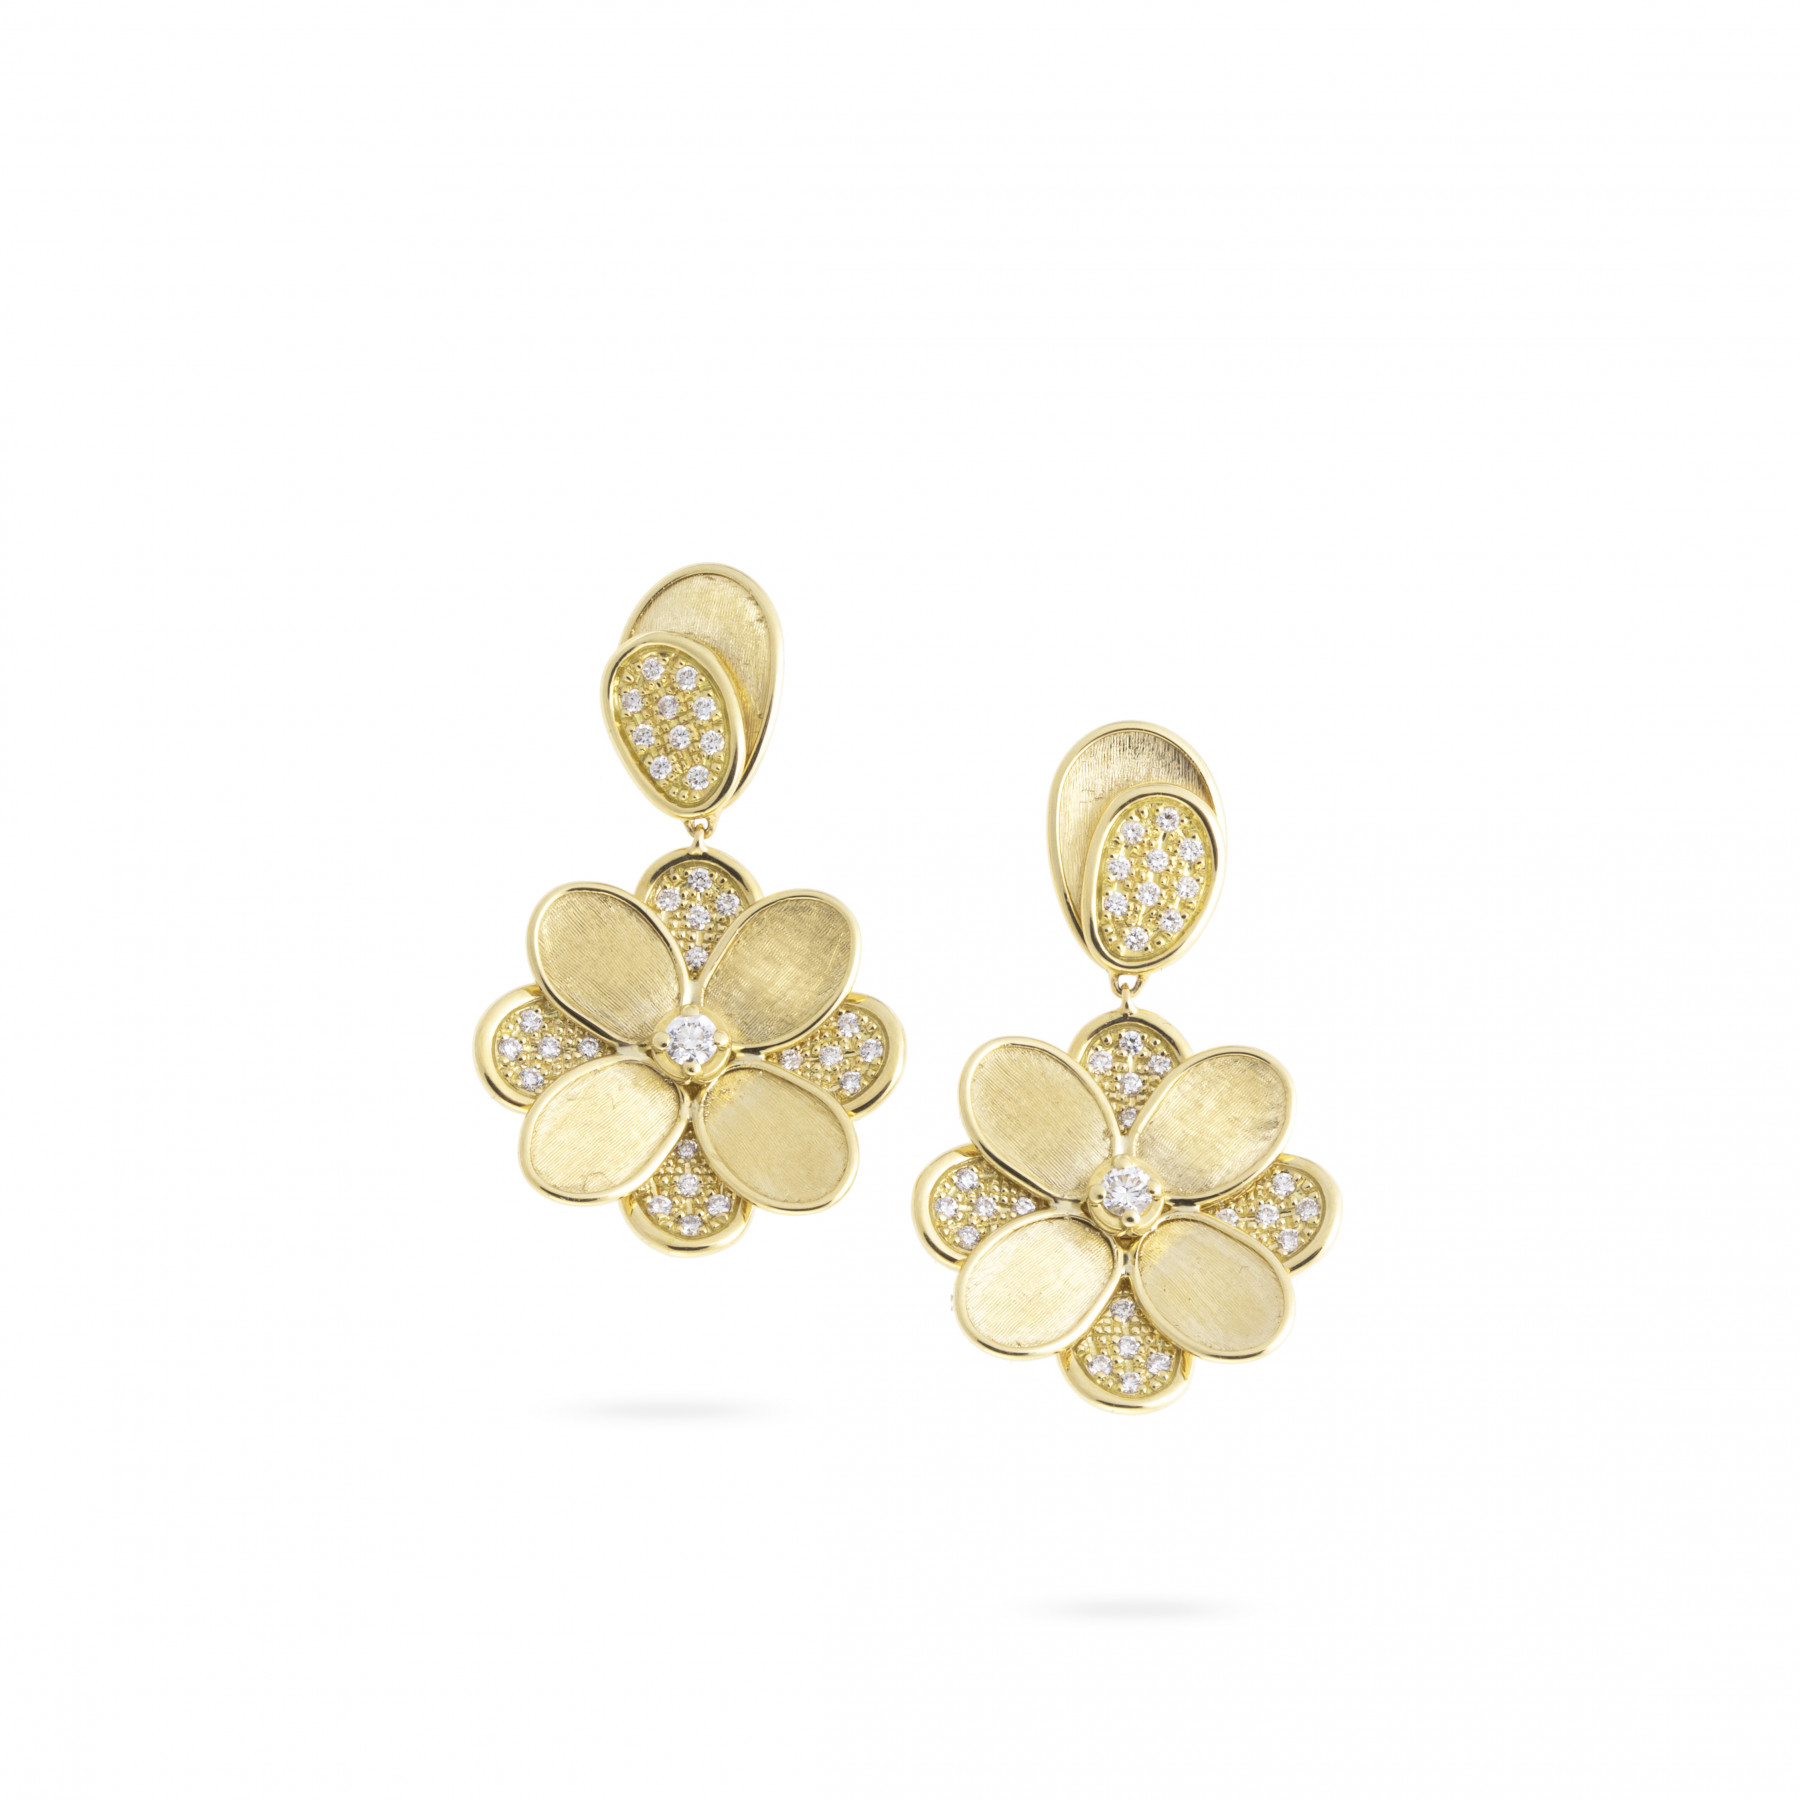 Marco Bicego Petali 18K Gold Pave Diamond Flower Drop Earrings